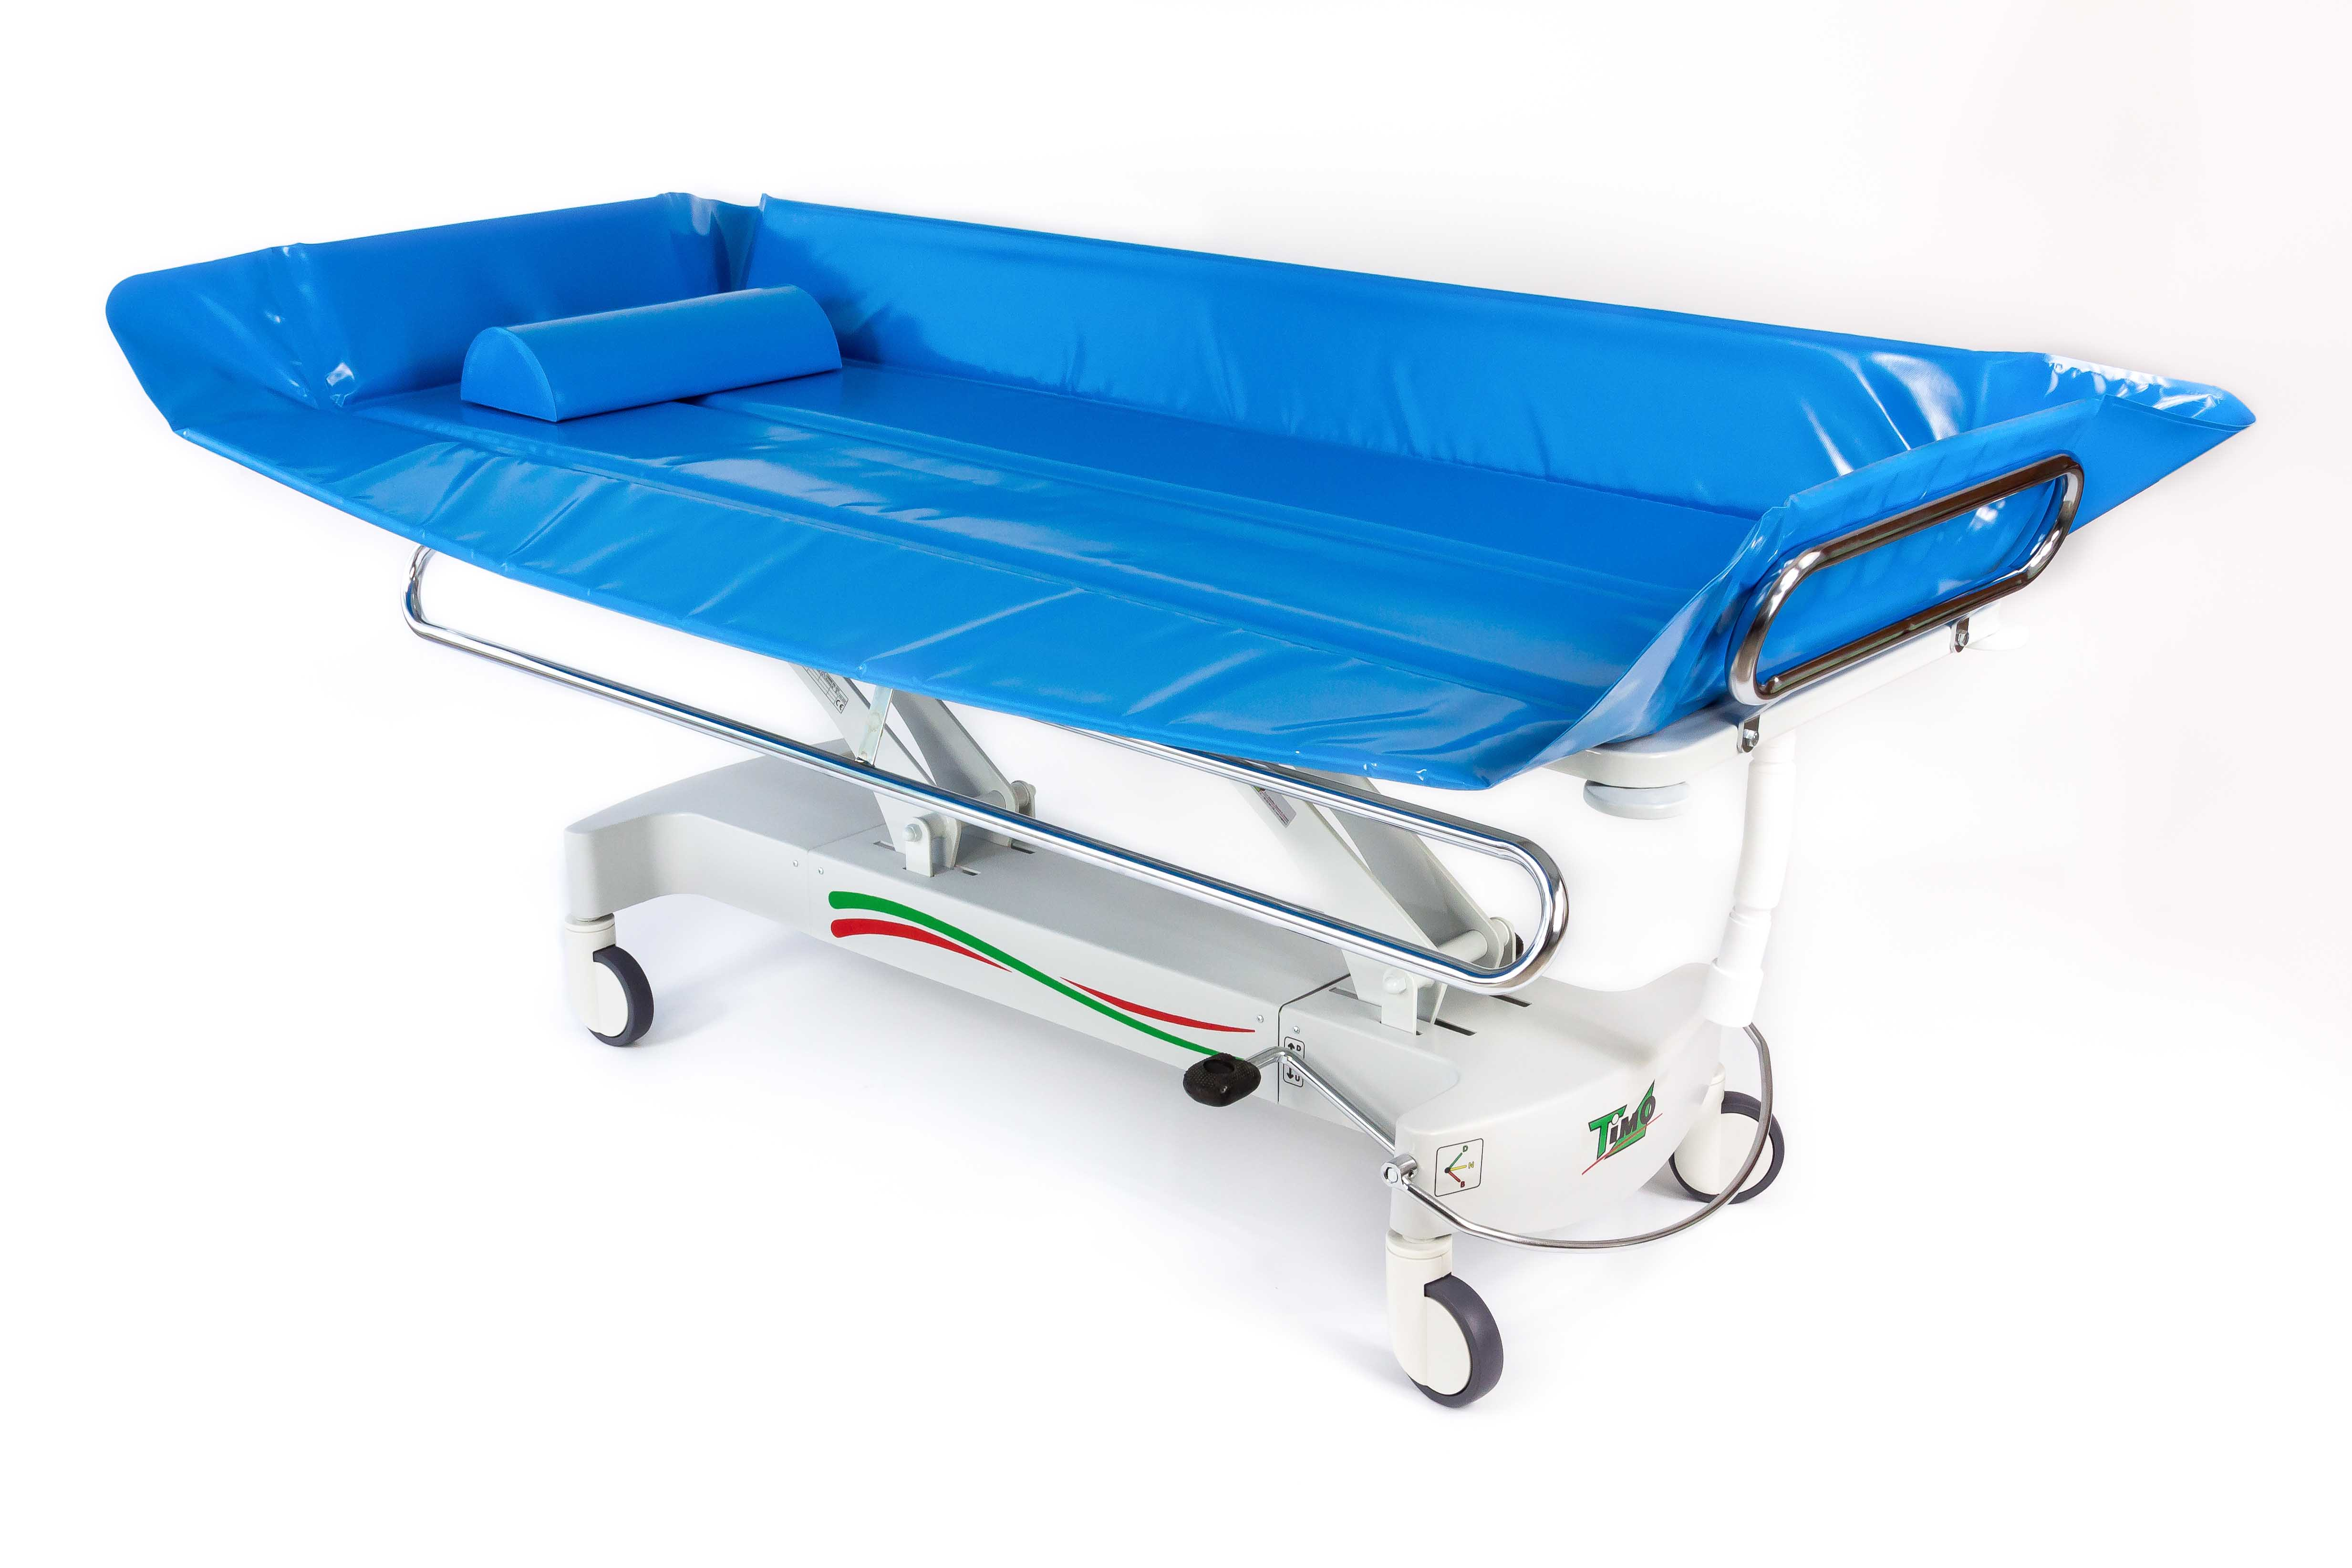 stretchers trolley amfora southern productcats ltd lopital solutions douchebrancard shower amilake hydraulic